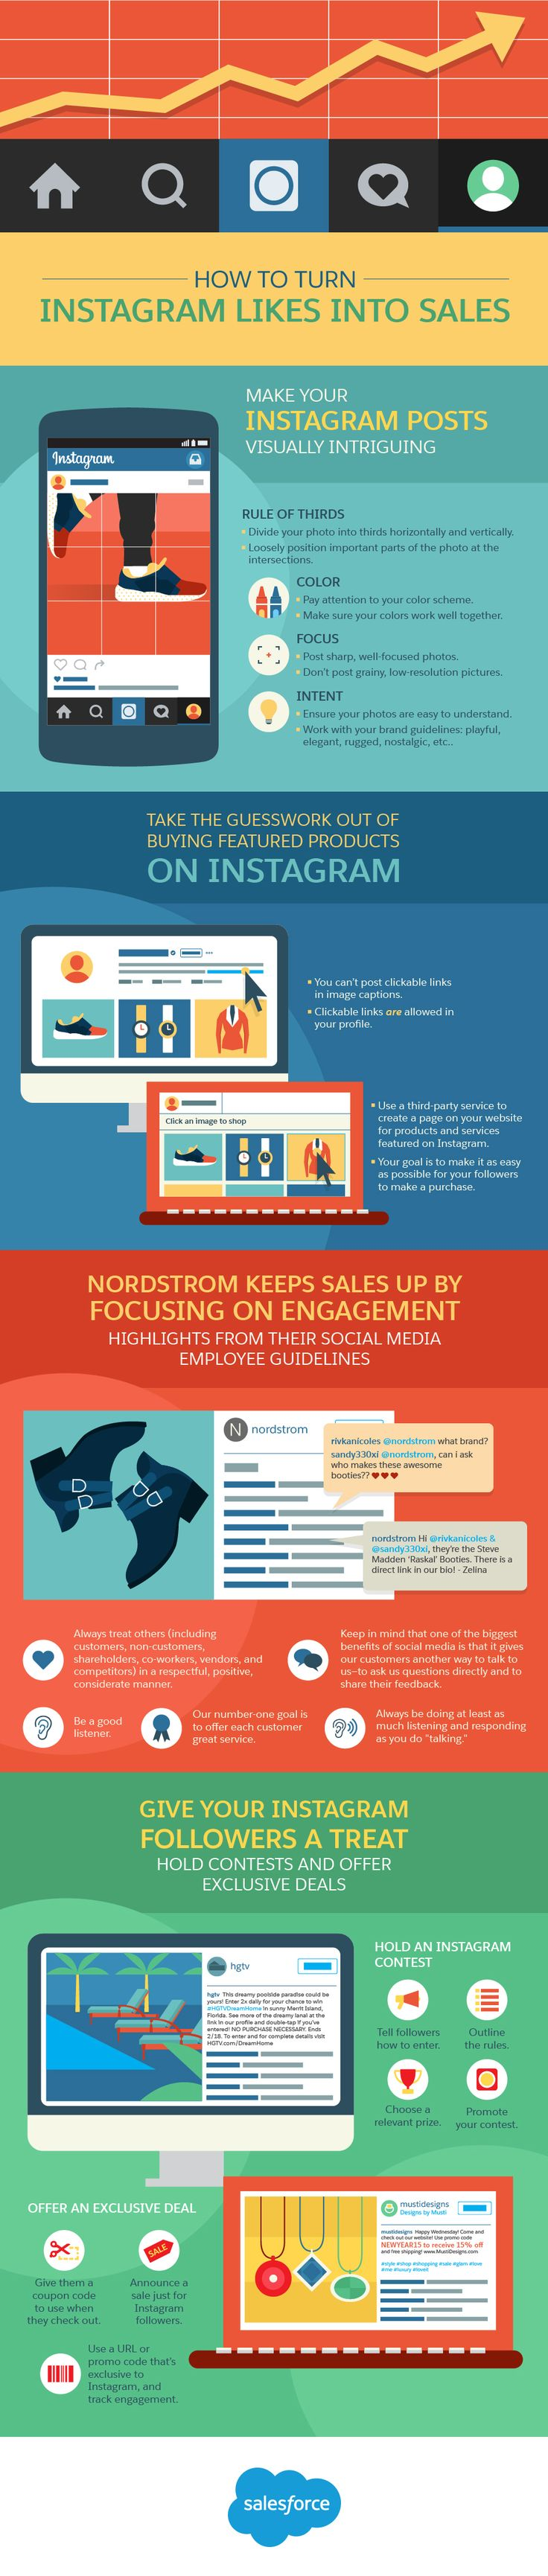 Instagram marketing strategy: To get you well on your way to use Instagram effectively for lead generation, here are 4 guaranteed tactics for turning likes into leads. #Infographic #Instagram #Sales